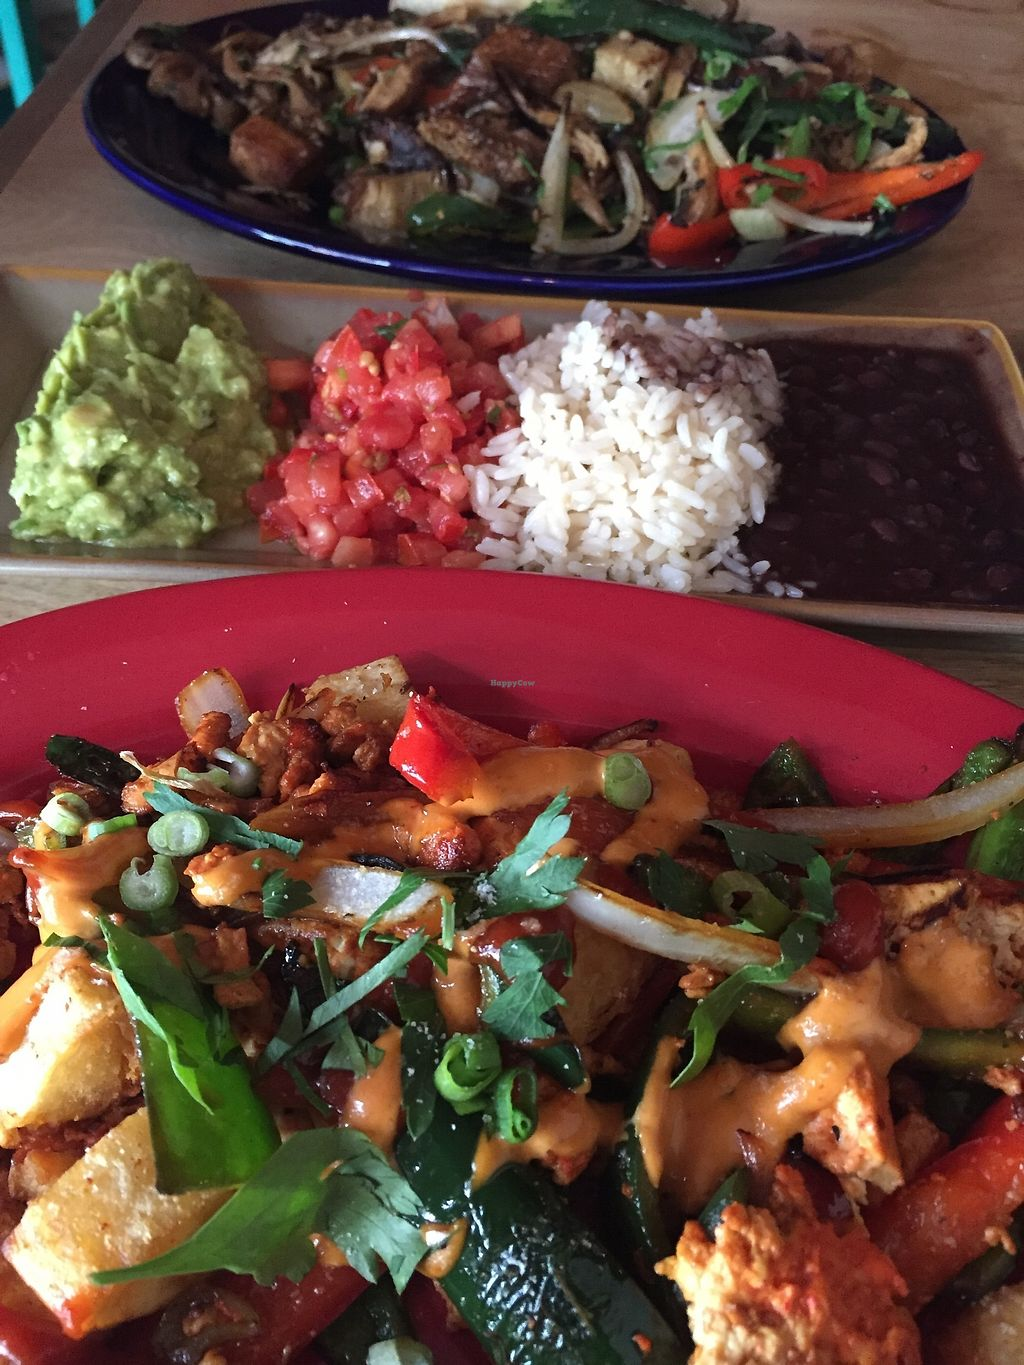 "Photo of Dos Segundos Cantina  by <a href=""/members/profile/A.Potter"">A.Potter</a> <br/>Tofu scramble, seitan & smoked tofu fajitas, and all the fajita accompaniments.   <br/> July 8, 2017  - <a href='/contact/abuse/image/34844/277746'>Report</a>"